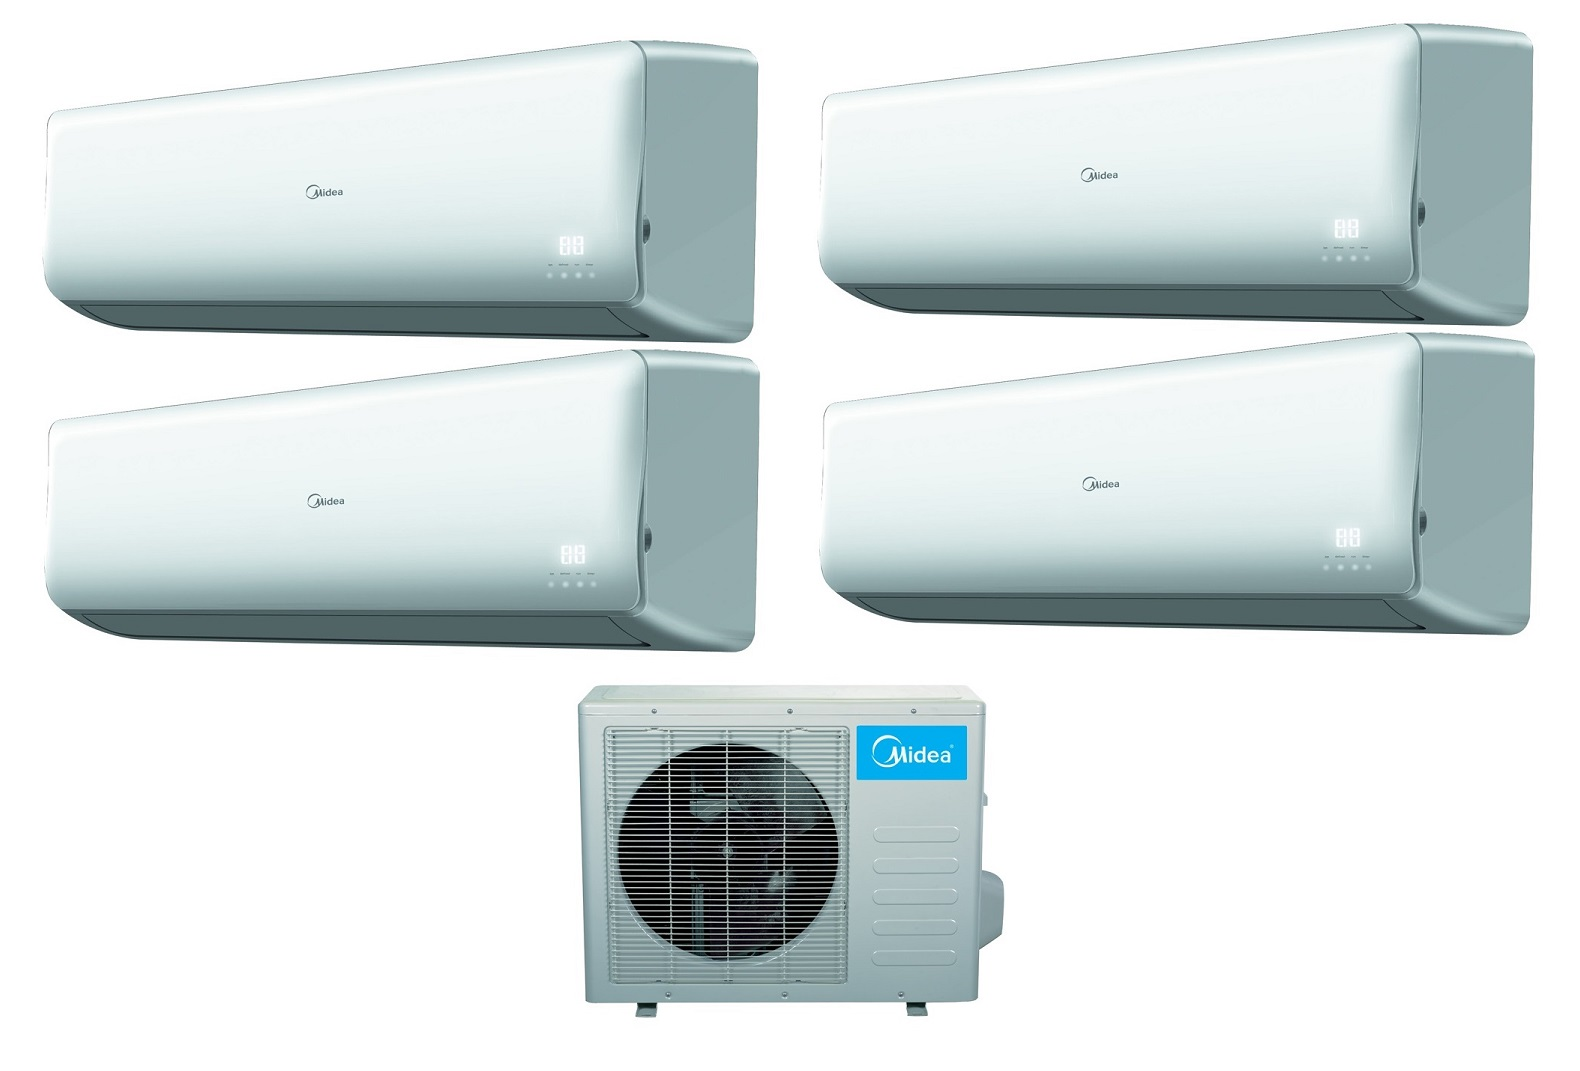 Midea 16 SEER 4 Room 4x9000 BTU Quad Zone Mini Split Heat Pump AC